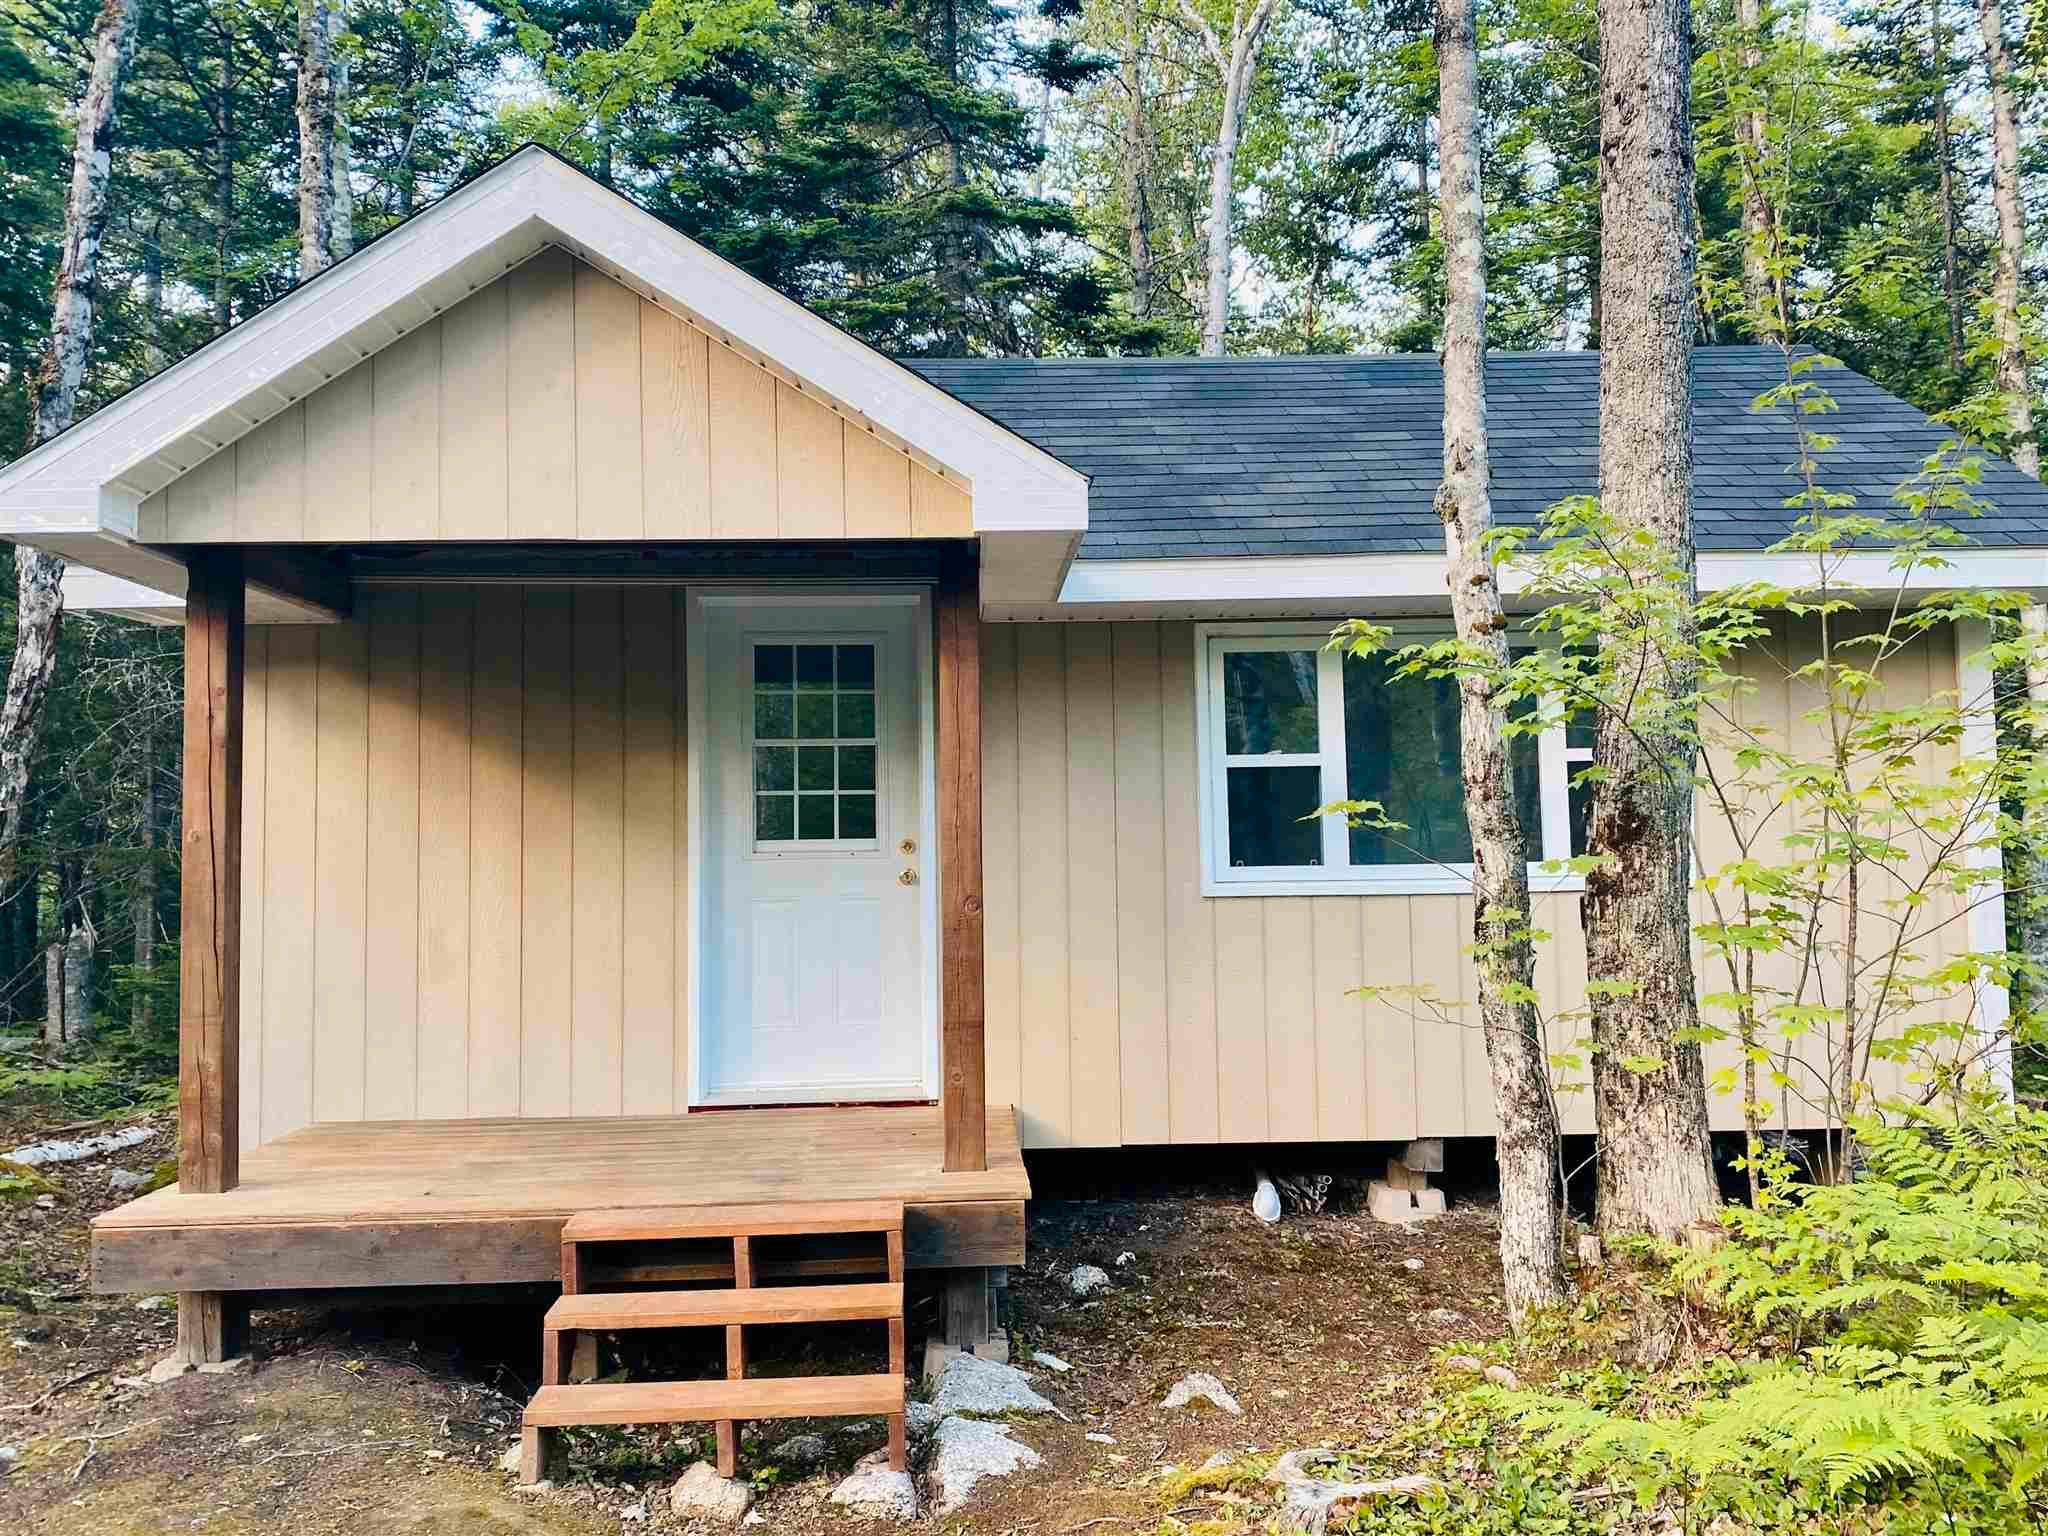 Main Photo: 77 Forest Heights Drive in Vaughan: 403-Hants County Residential for sale (Annapolis Valley)  : MLS®# 202118003